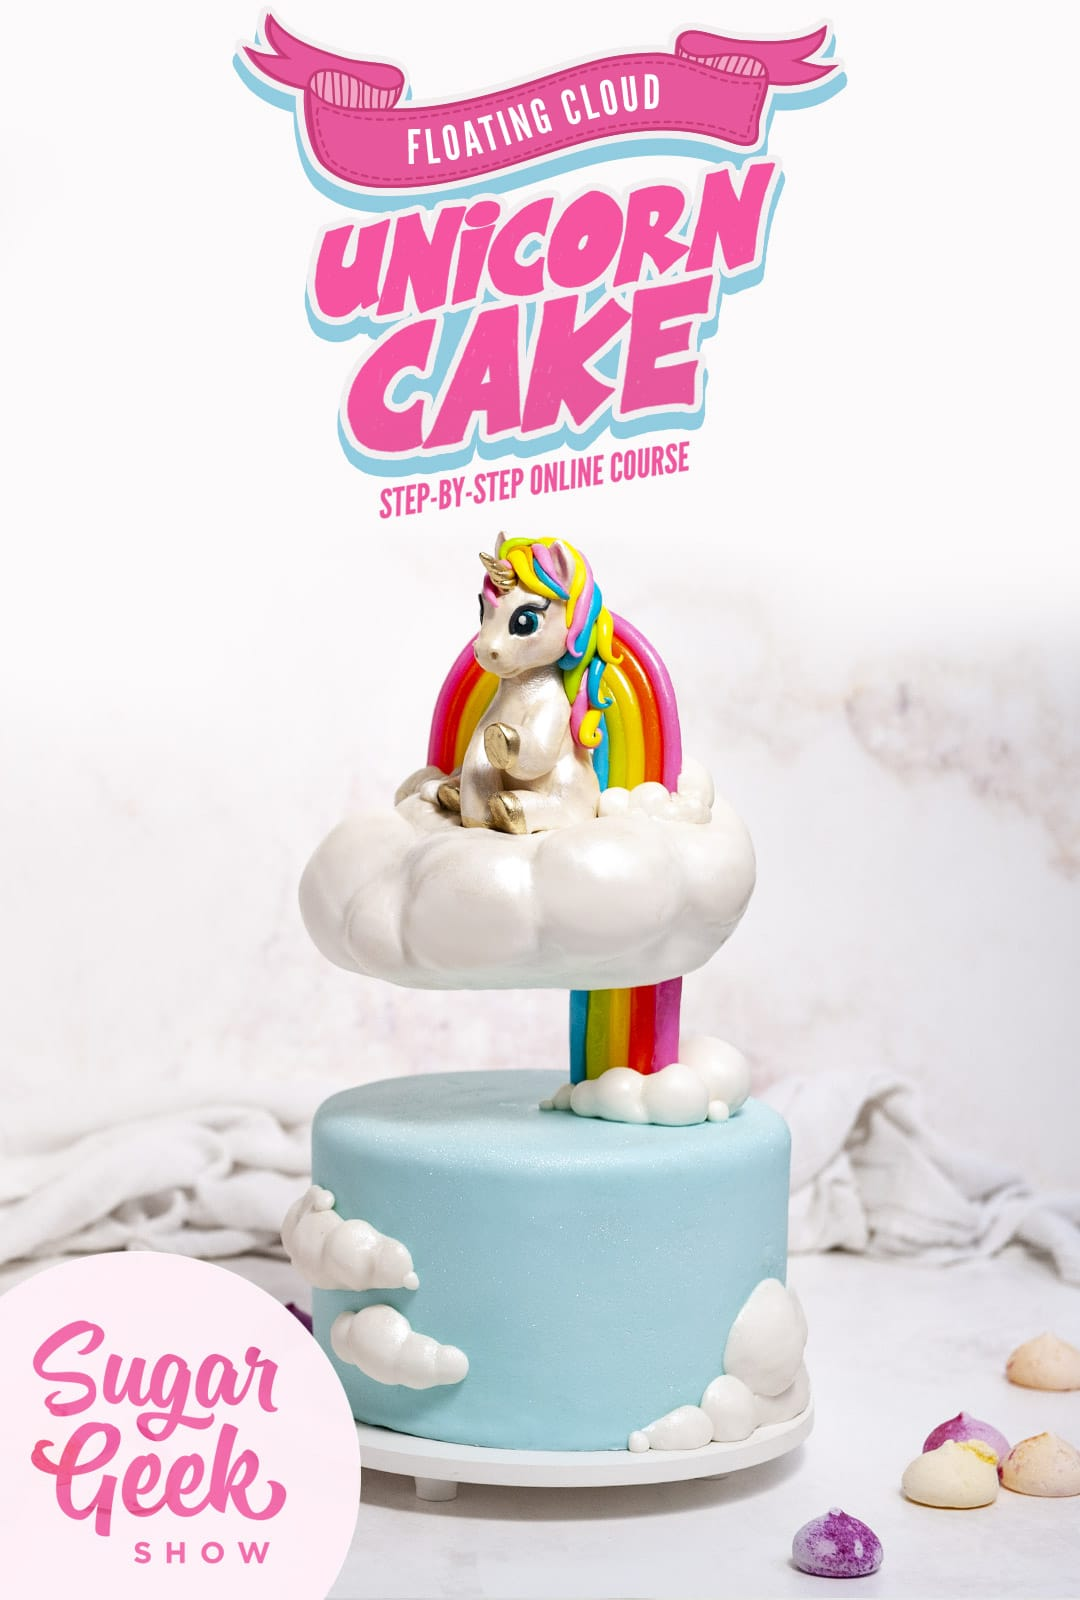 Cake sculpted to look like a unicorn sitting on a floating rainbow cloud